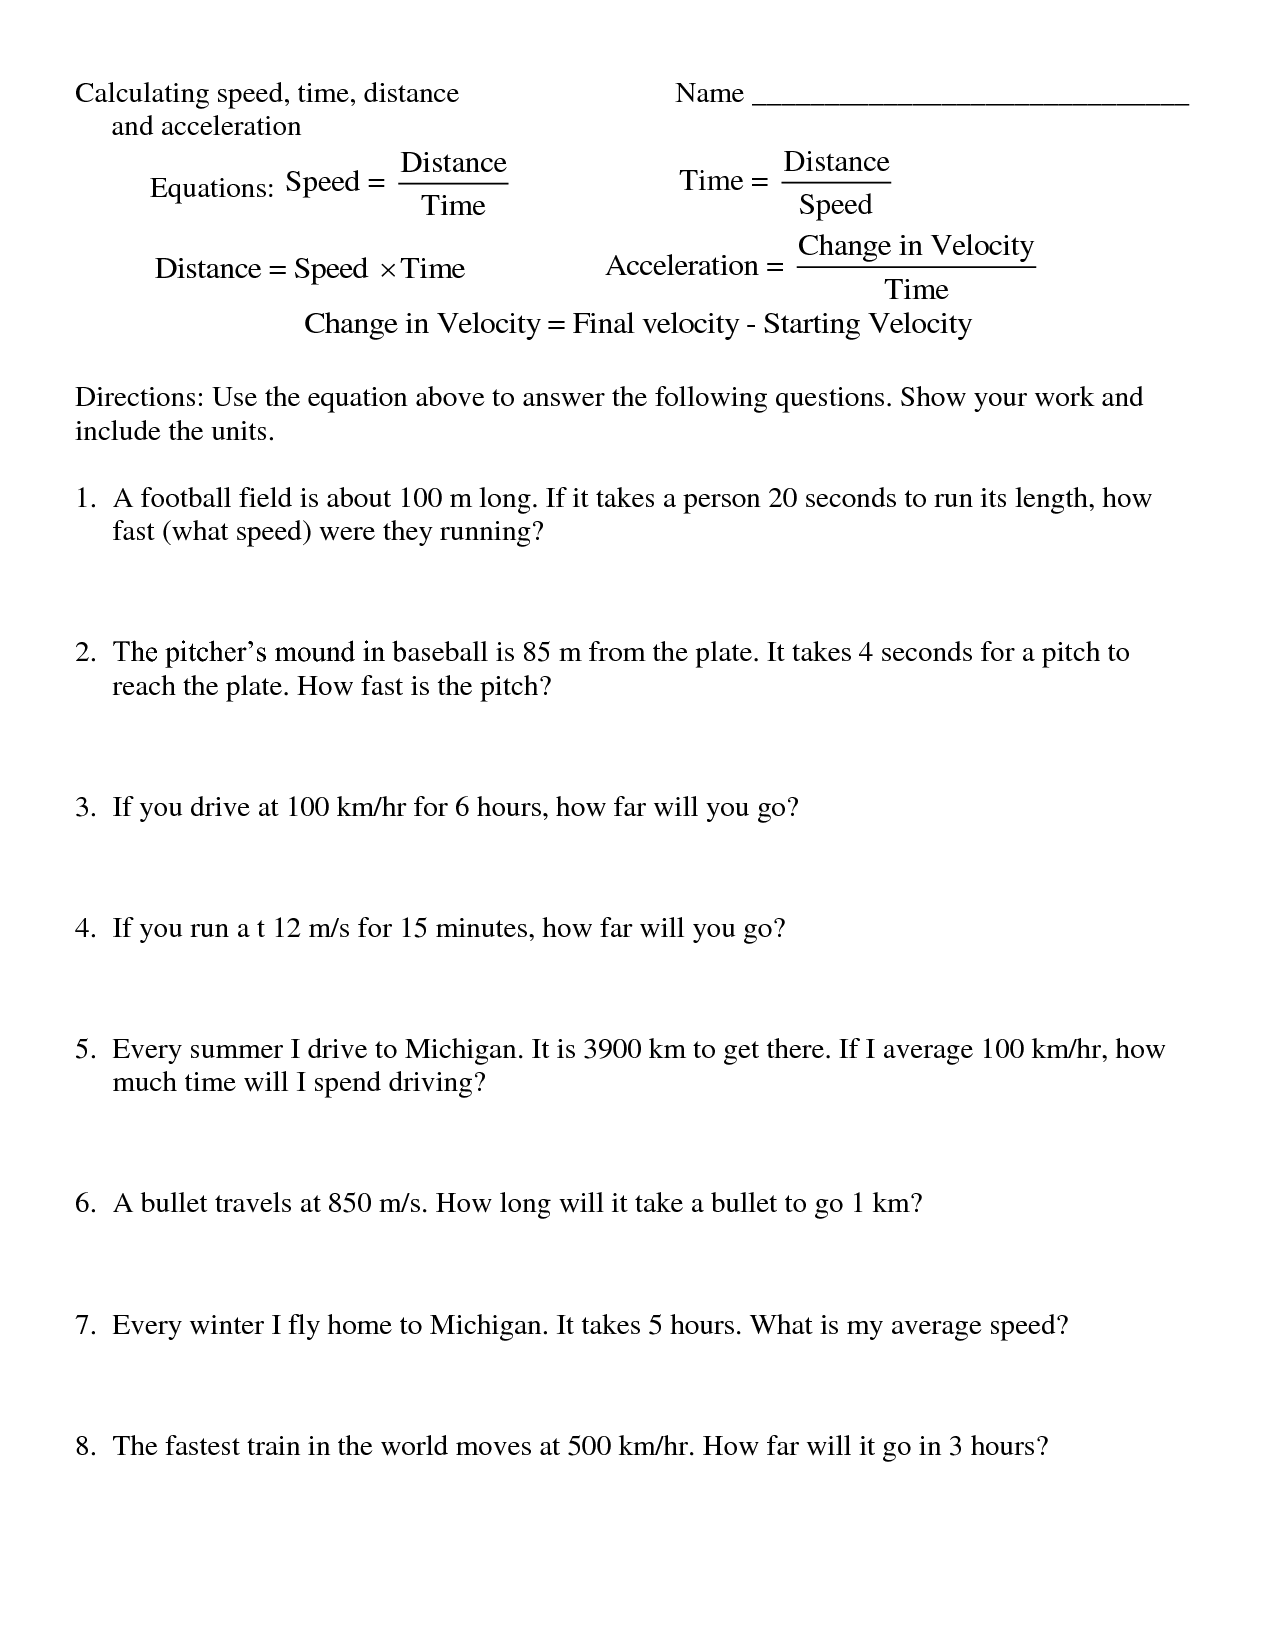 Calculating Speed Problems Worksheet